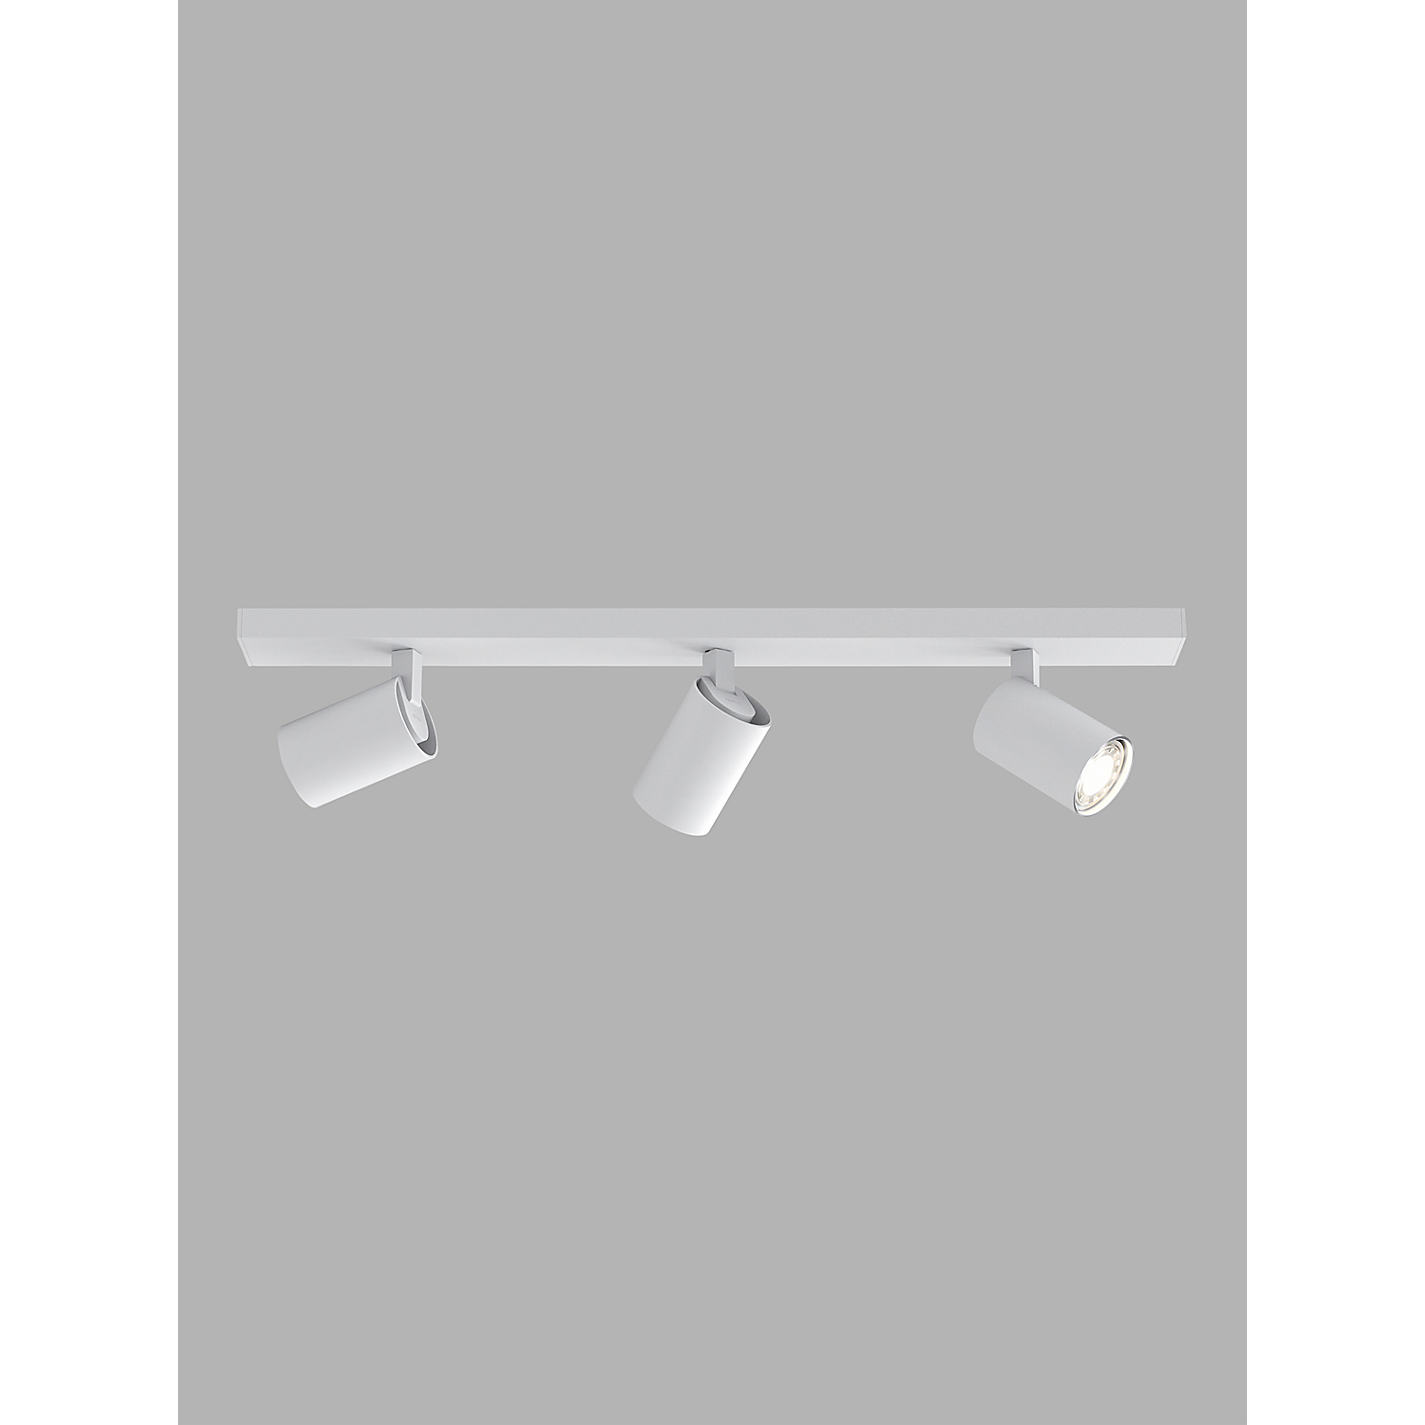 Buy astro ascoli bar spotlight 3 light john lewis buy astro ascoli bar spotlight 3 light online at johnlewis aloadofball Image collections